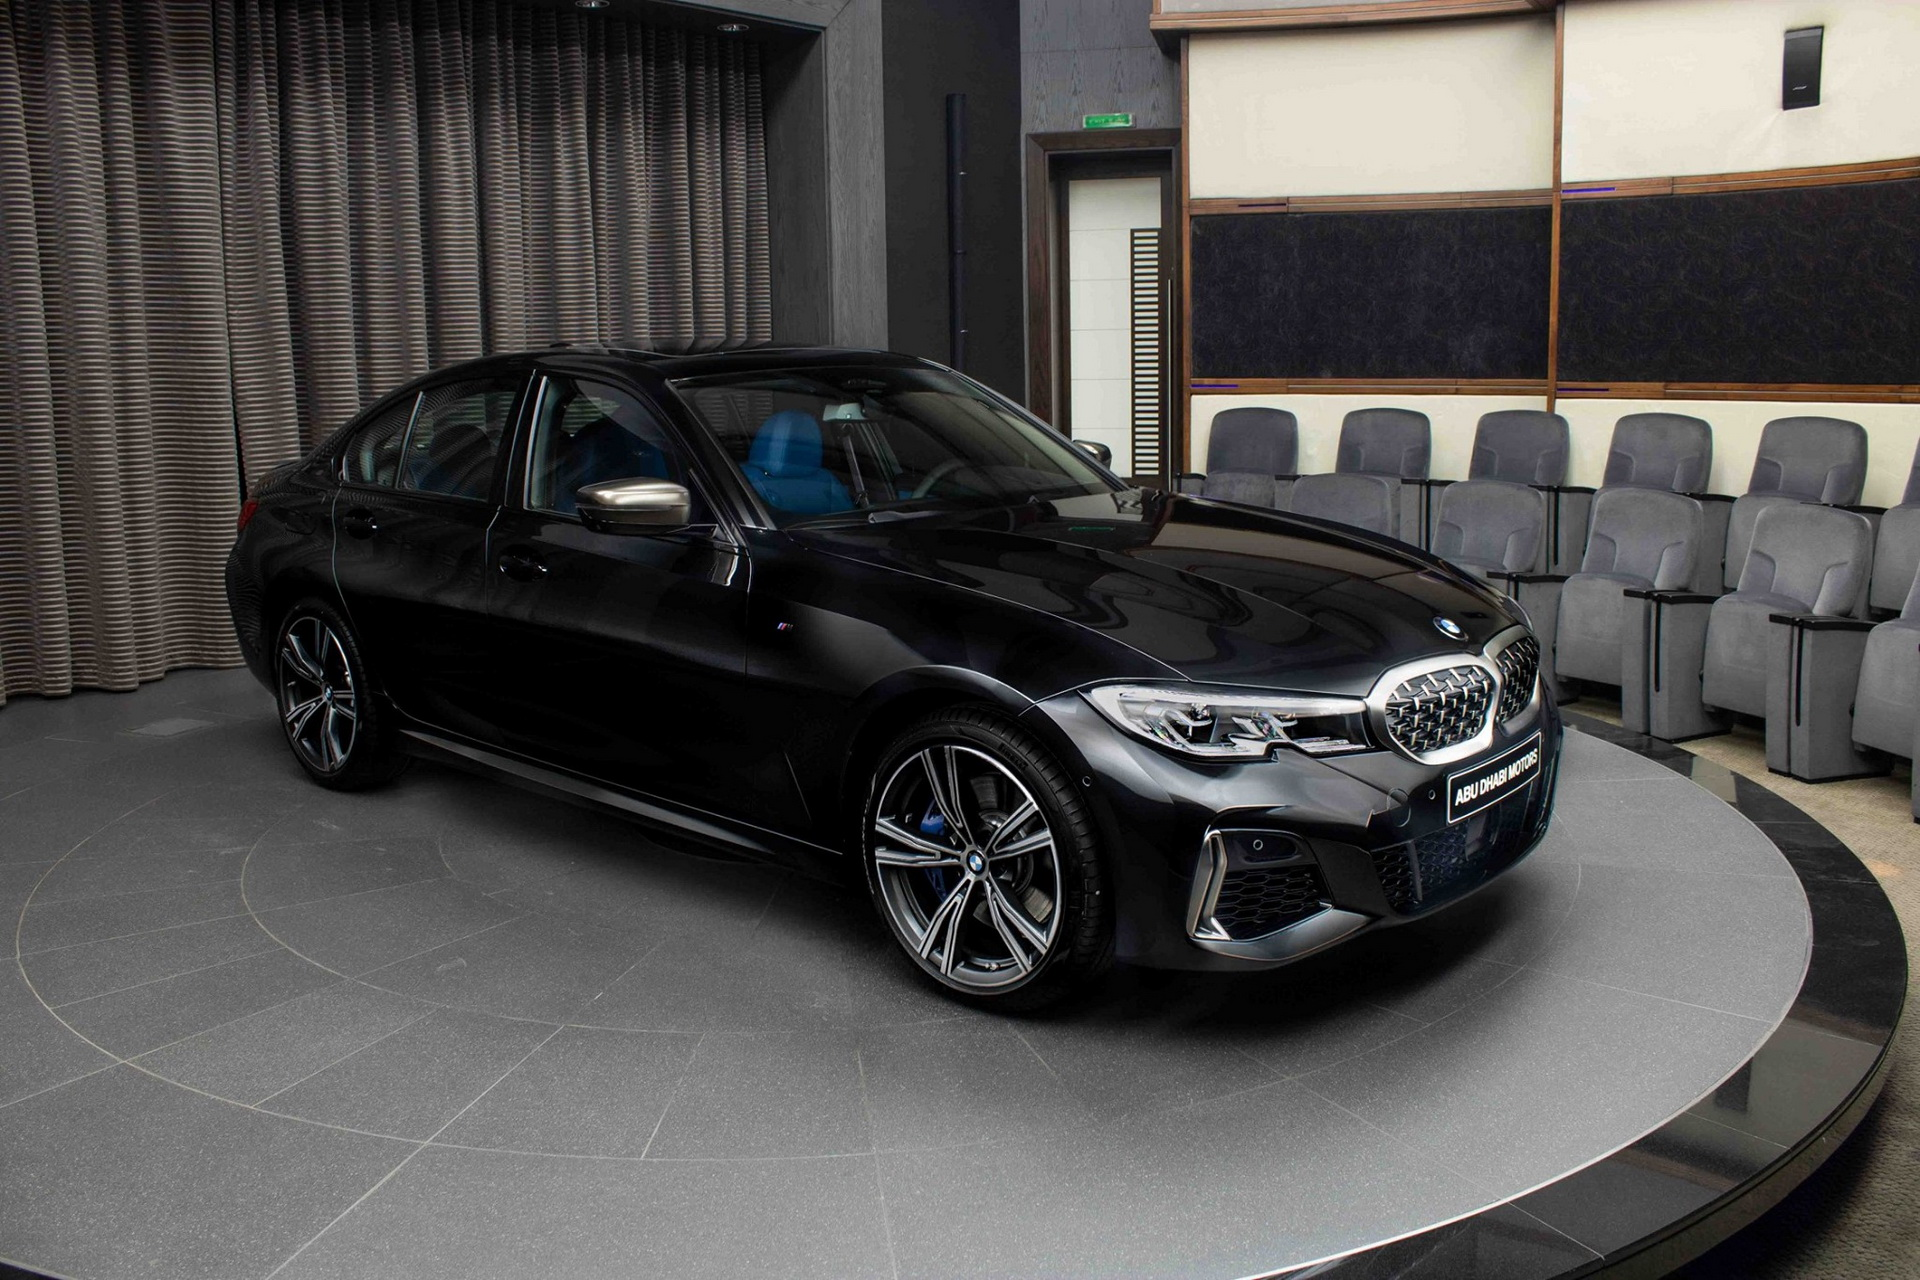 2020 Bmw M340i Shows Up In Sapphire Black With Plenty Of Blue To Go Around Carscoops